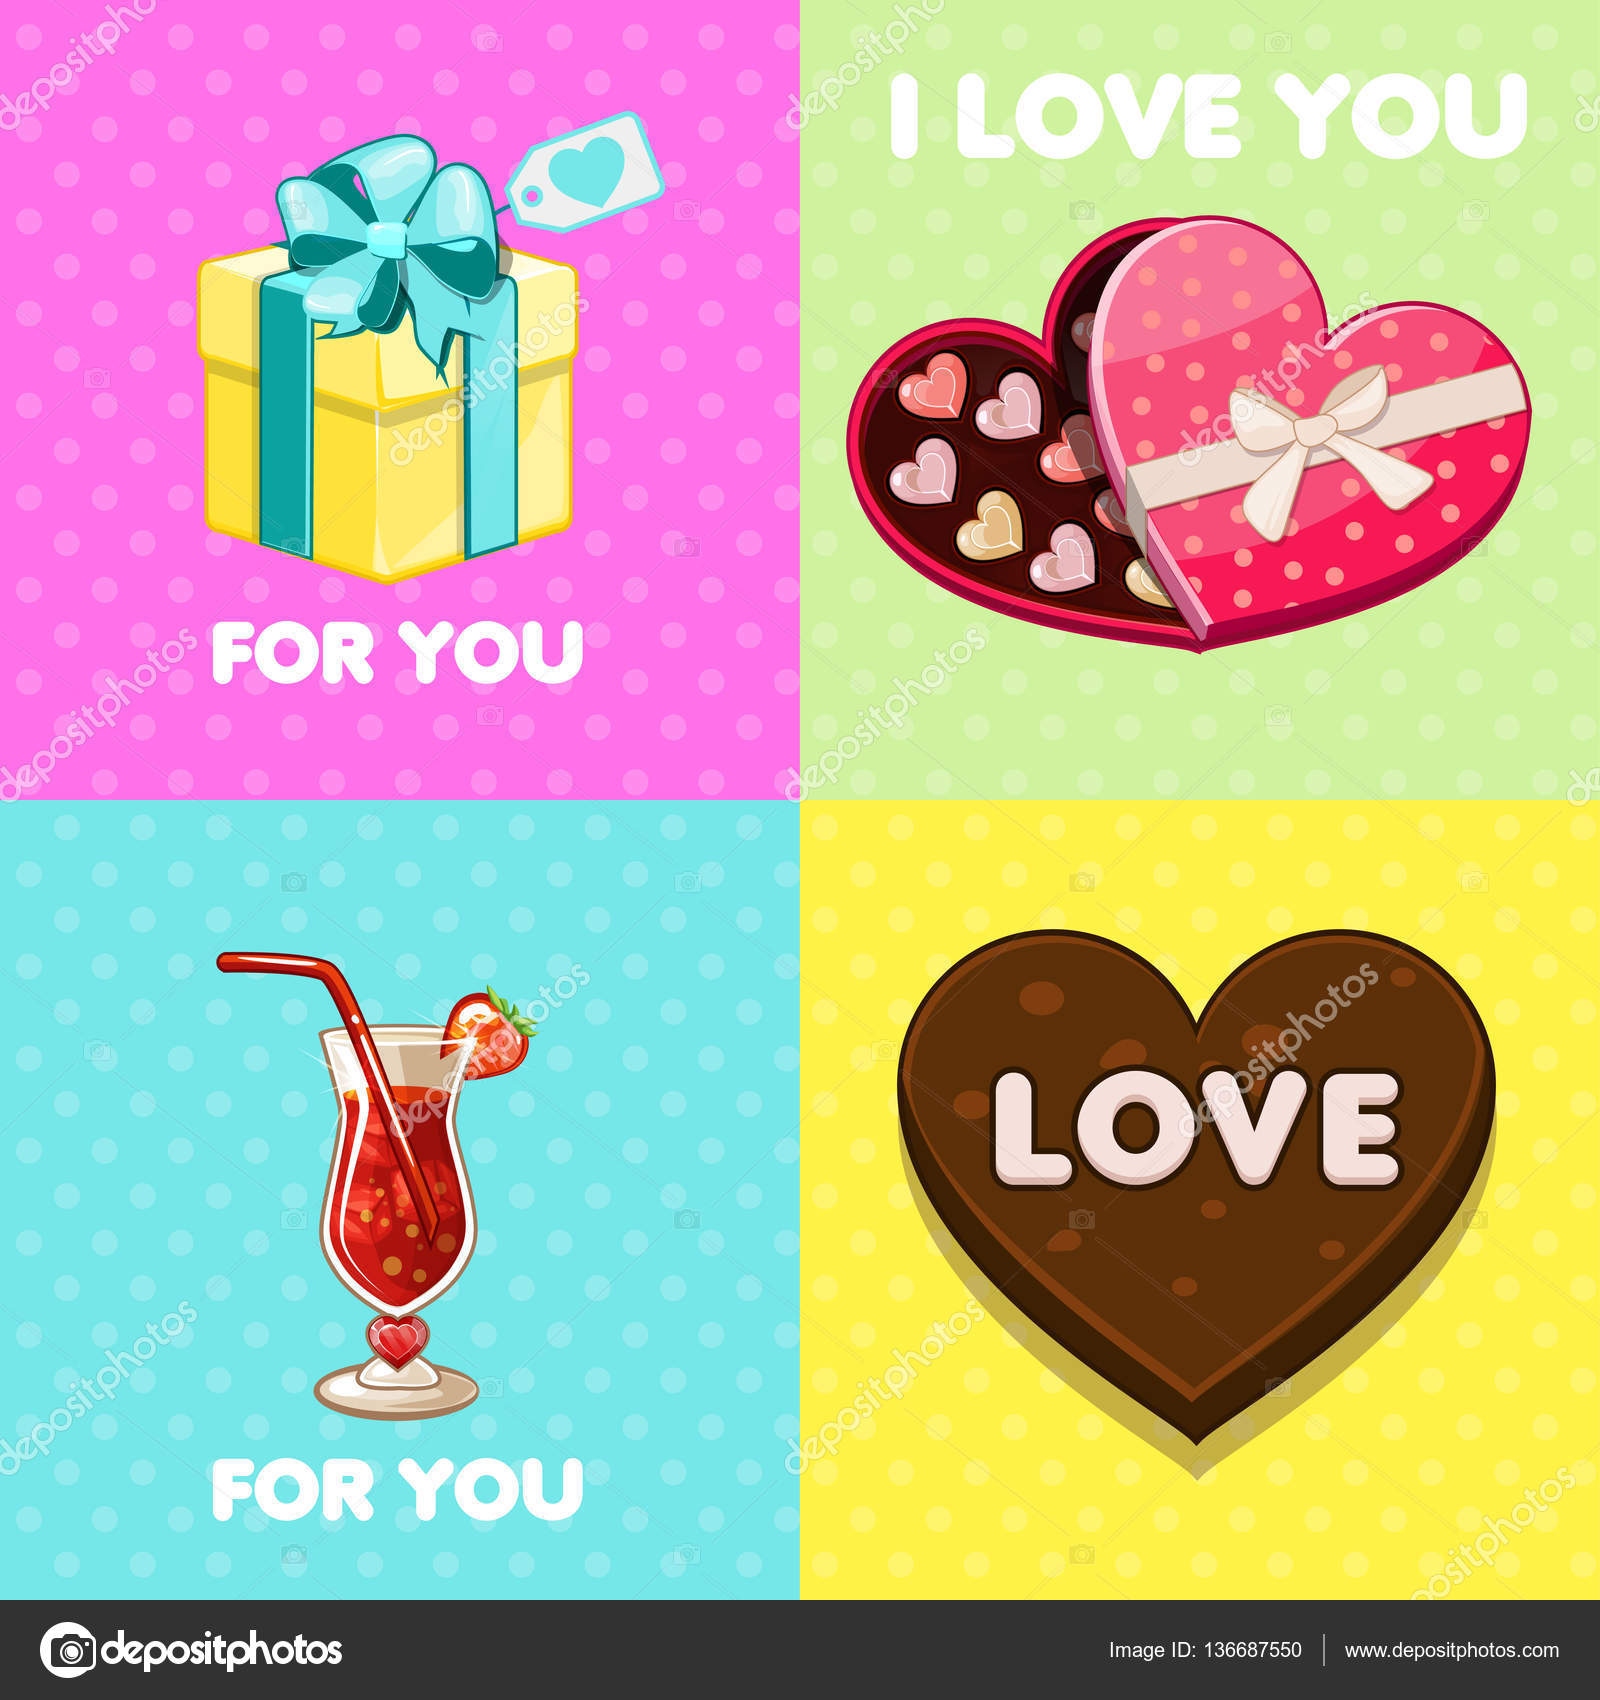 Pack of nice valentine greeting cards Vector BabySofja – Nice Valentine Cards